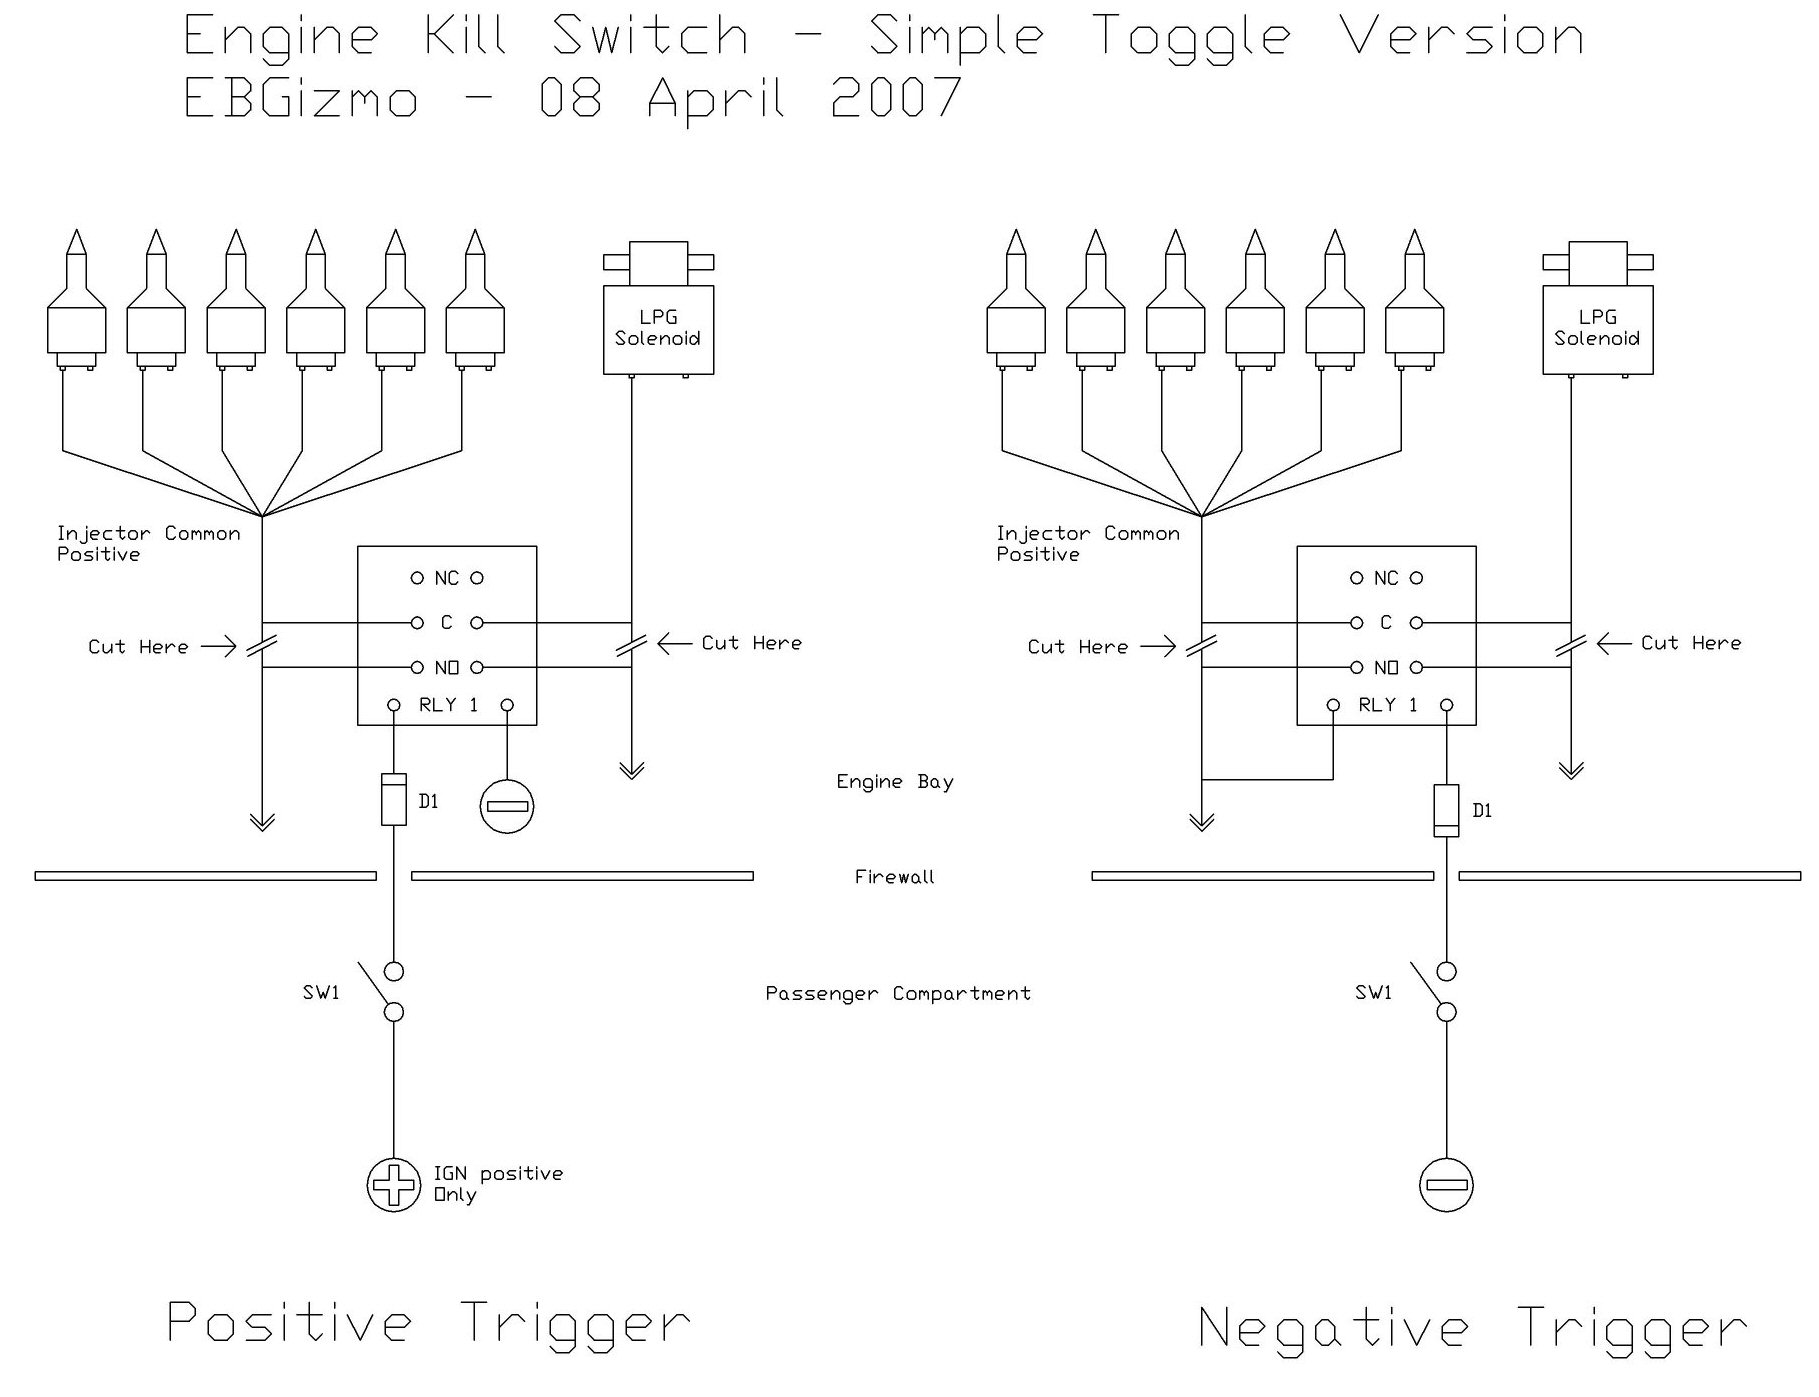 Kill Switch Simple Toggle Print Layout (4)-000001.jpg